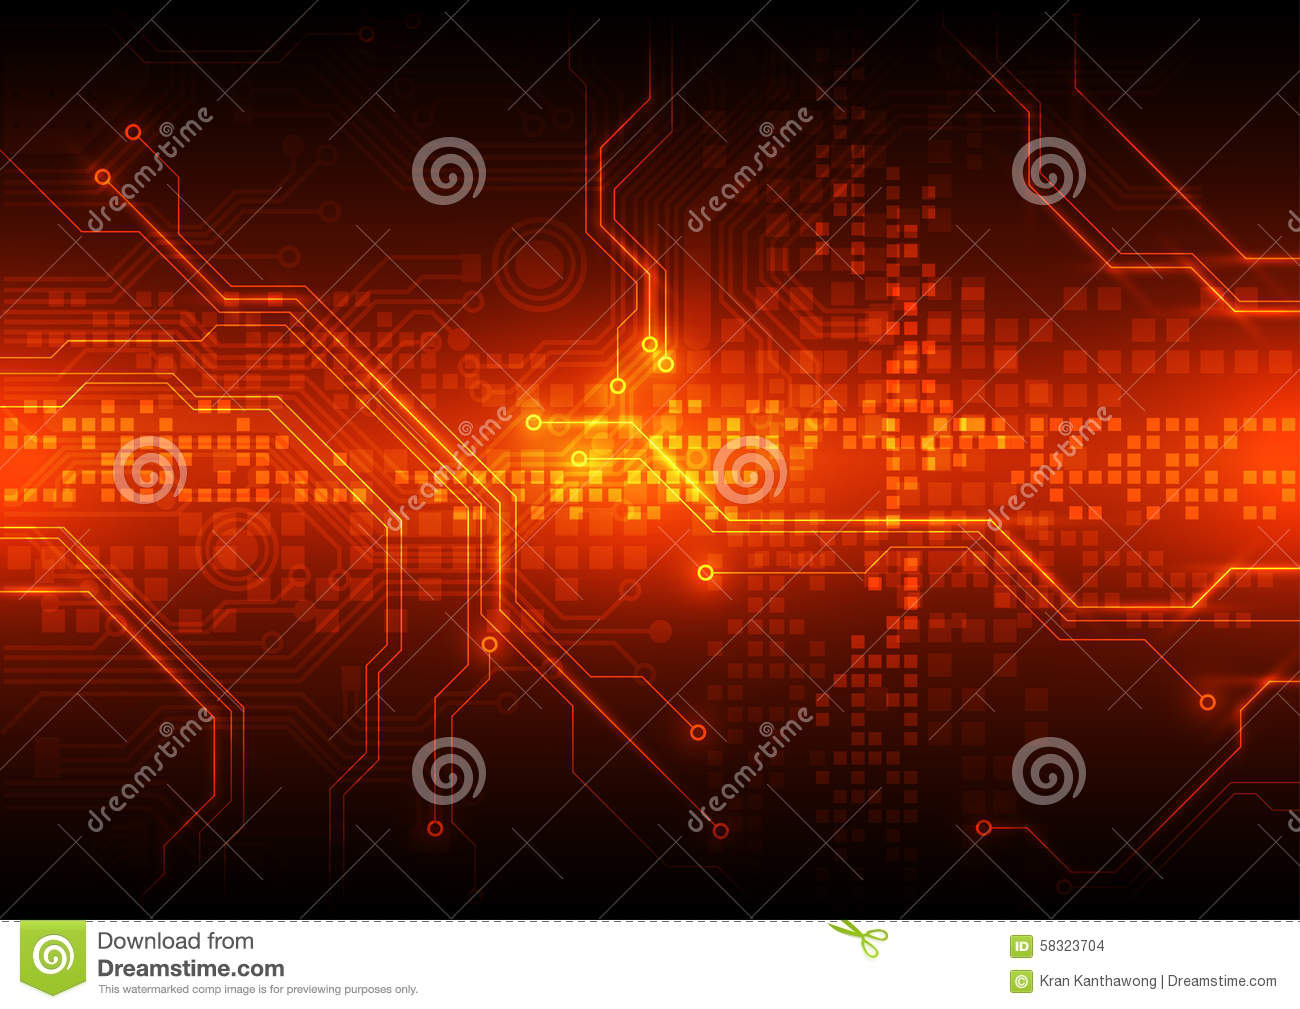 Abstract Vector Circuit Board Background Illustration Stock Design